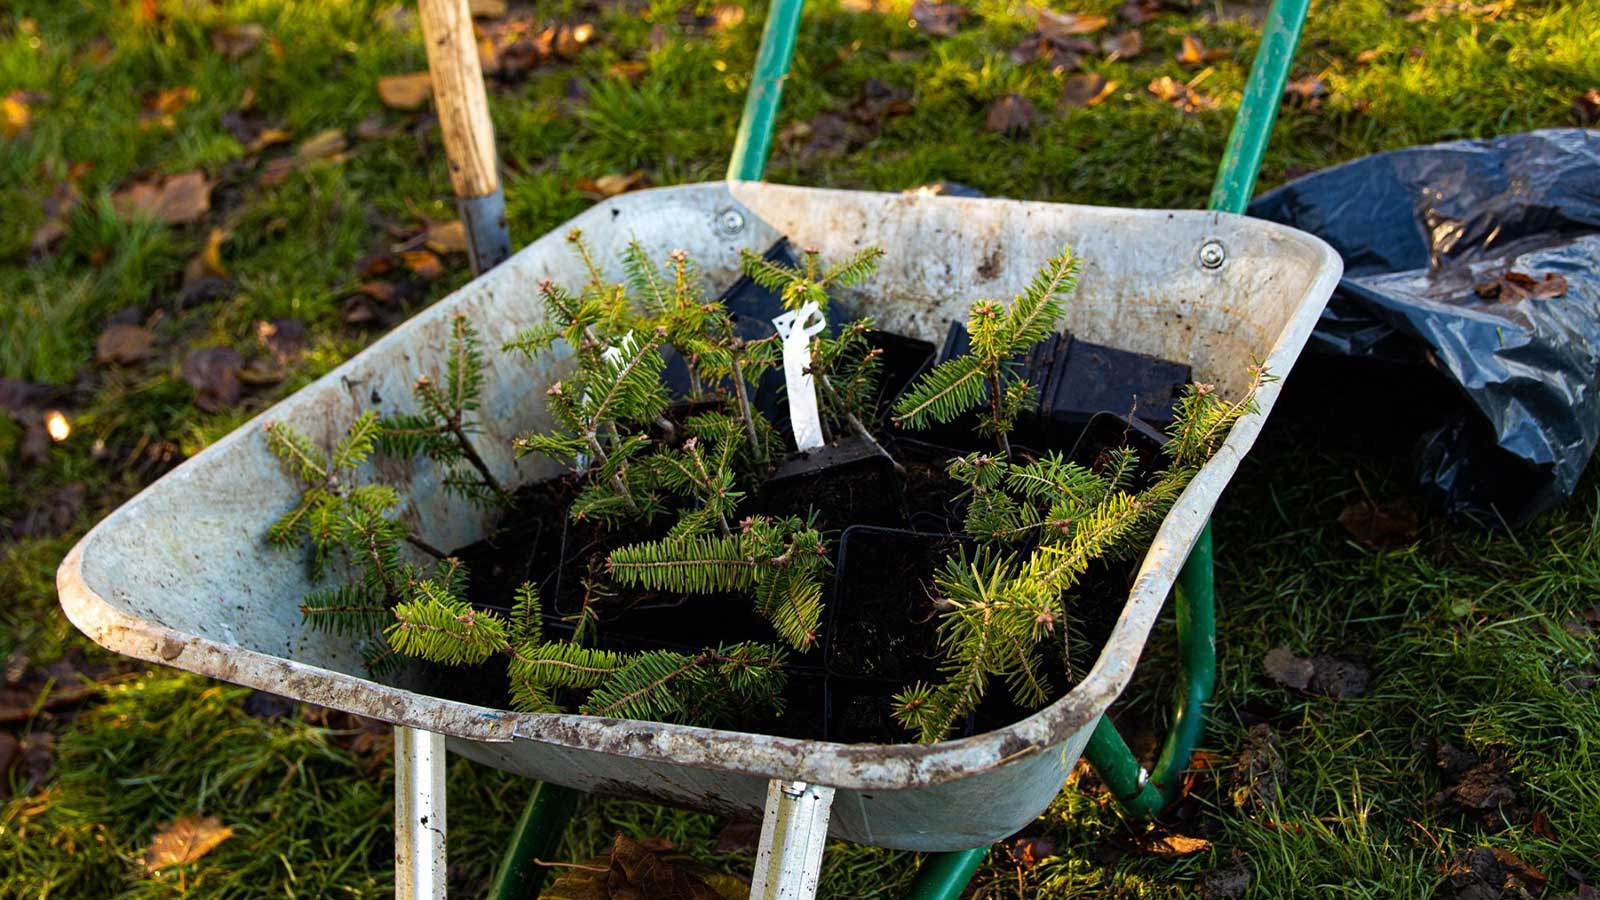 Ecosia trees are going in the ground near NHS hospitals across the UK